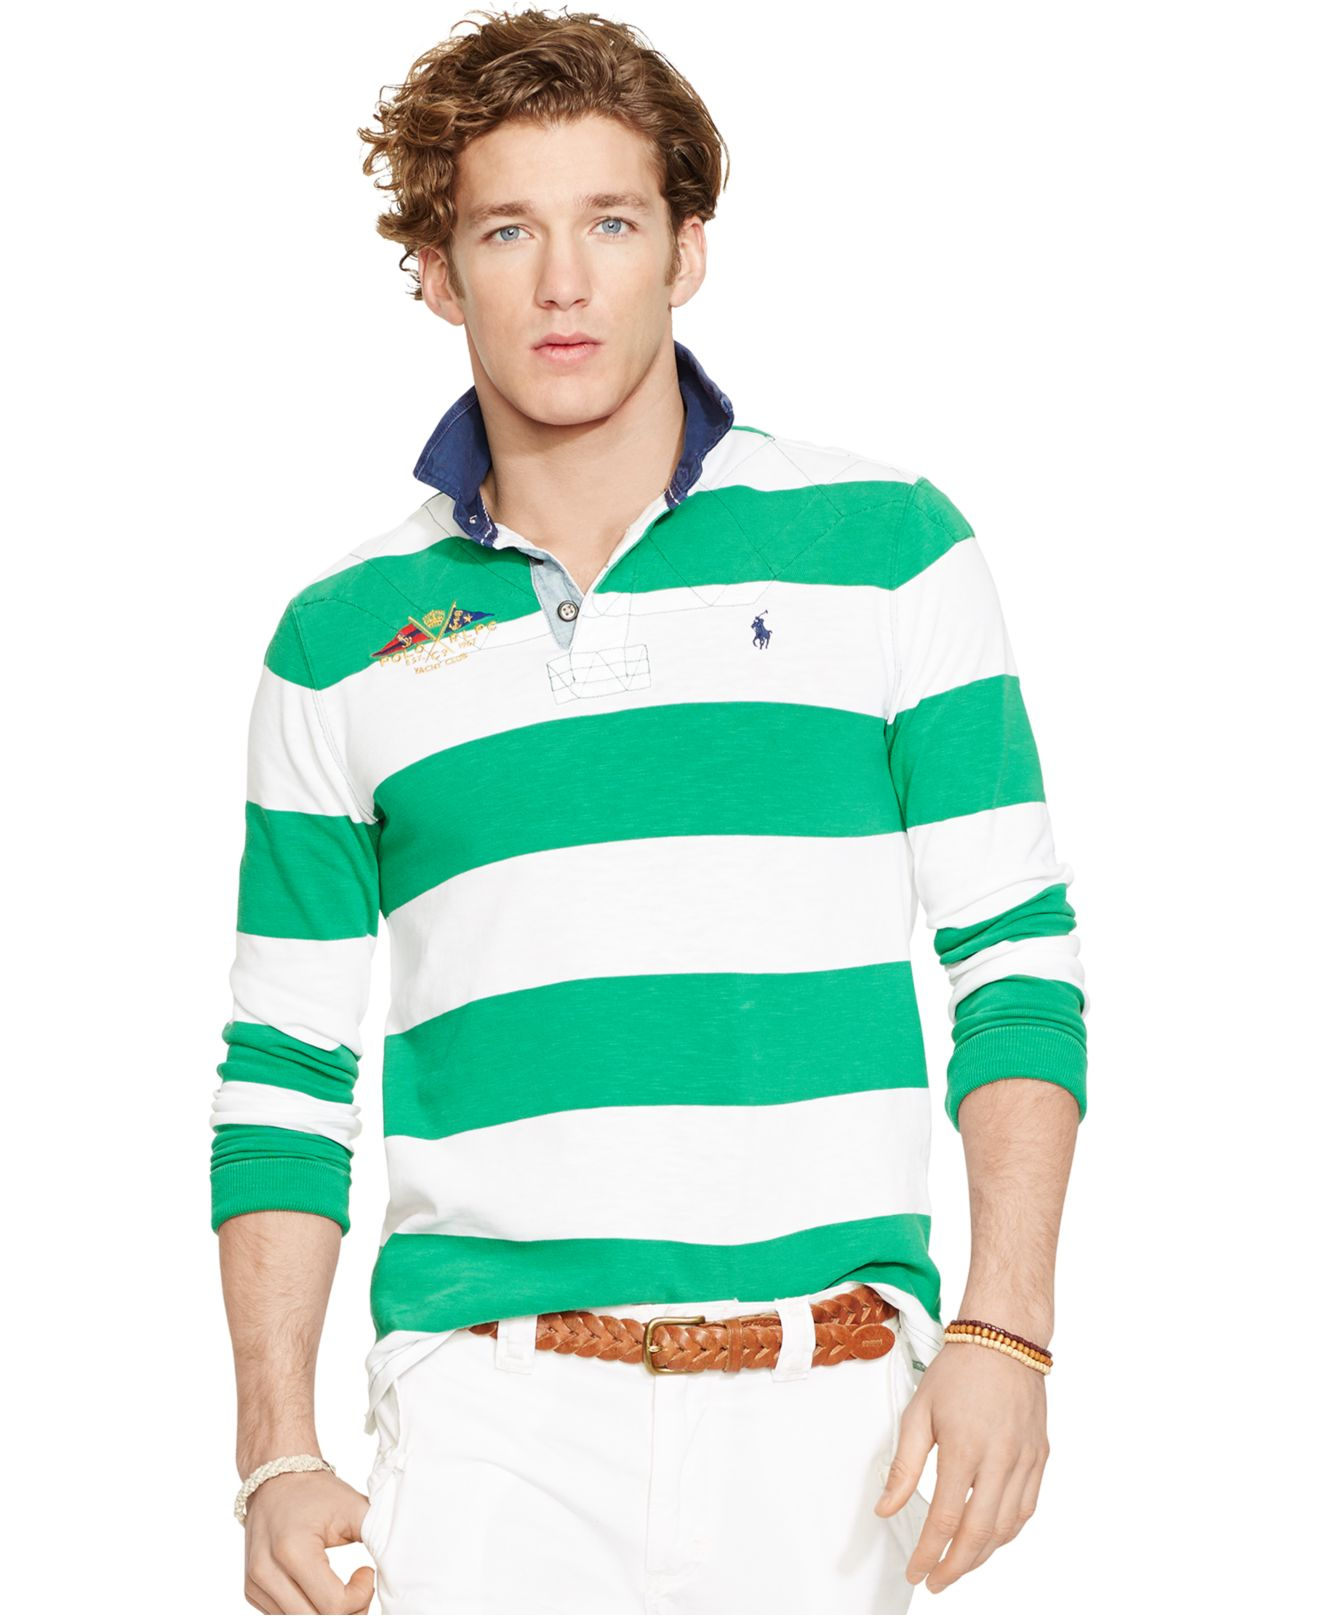 Polo Ralph Lauren Rugby Shirts For Men